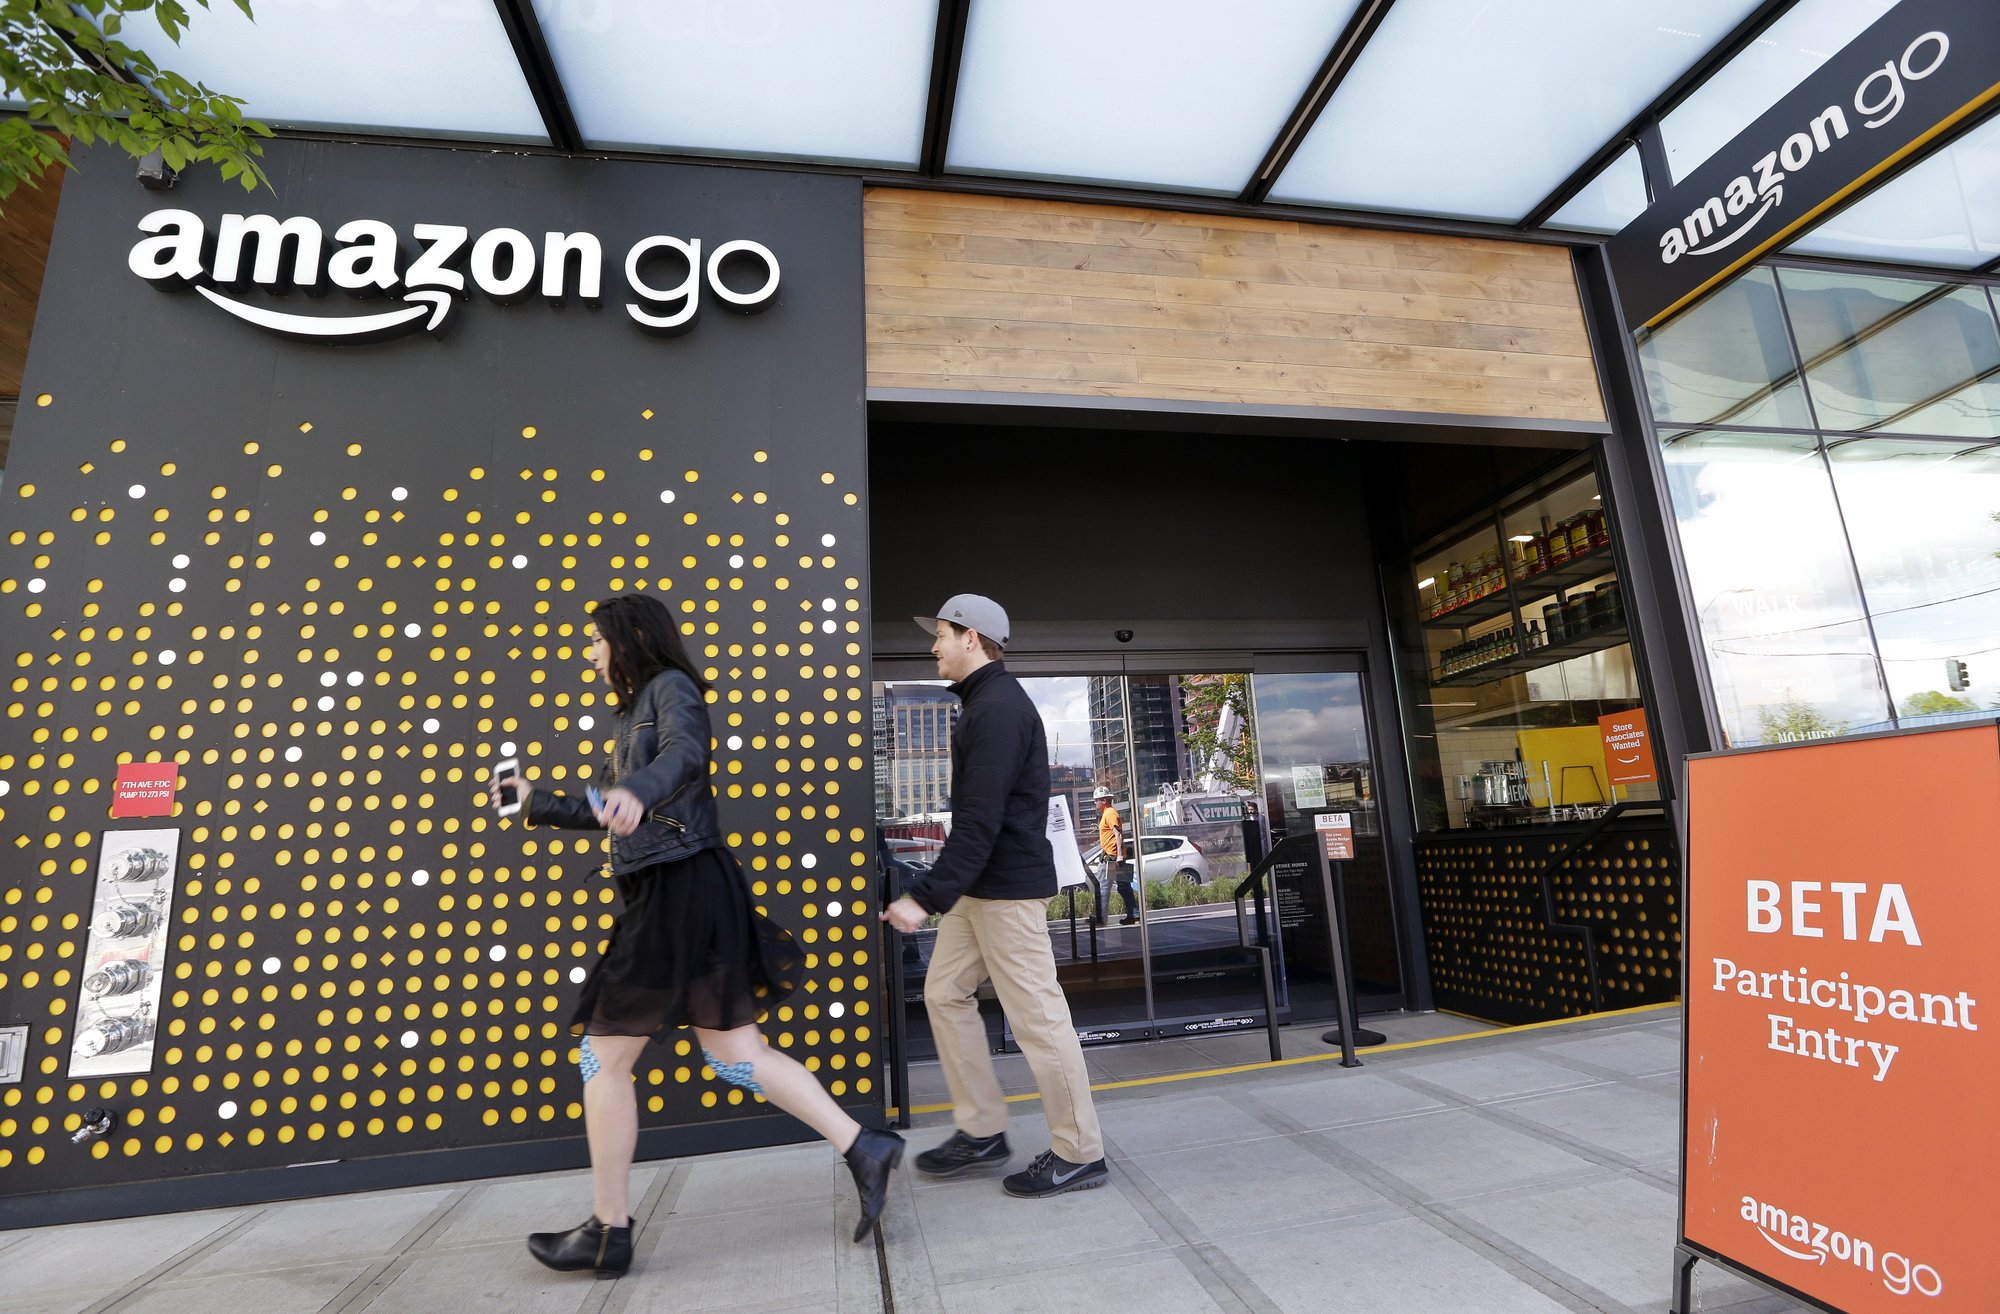 Amazon offers free machine learning courses to general consumers